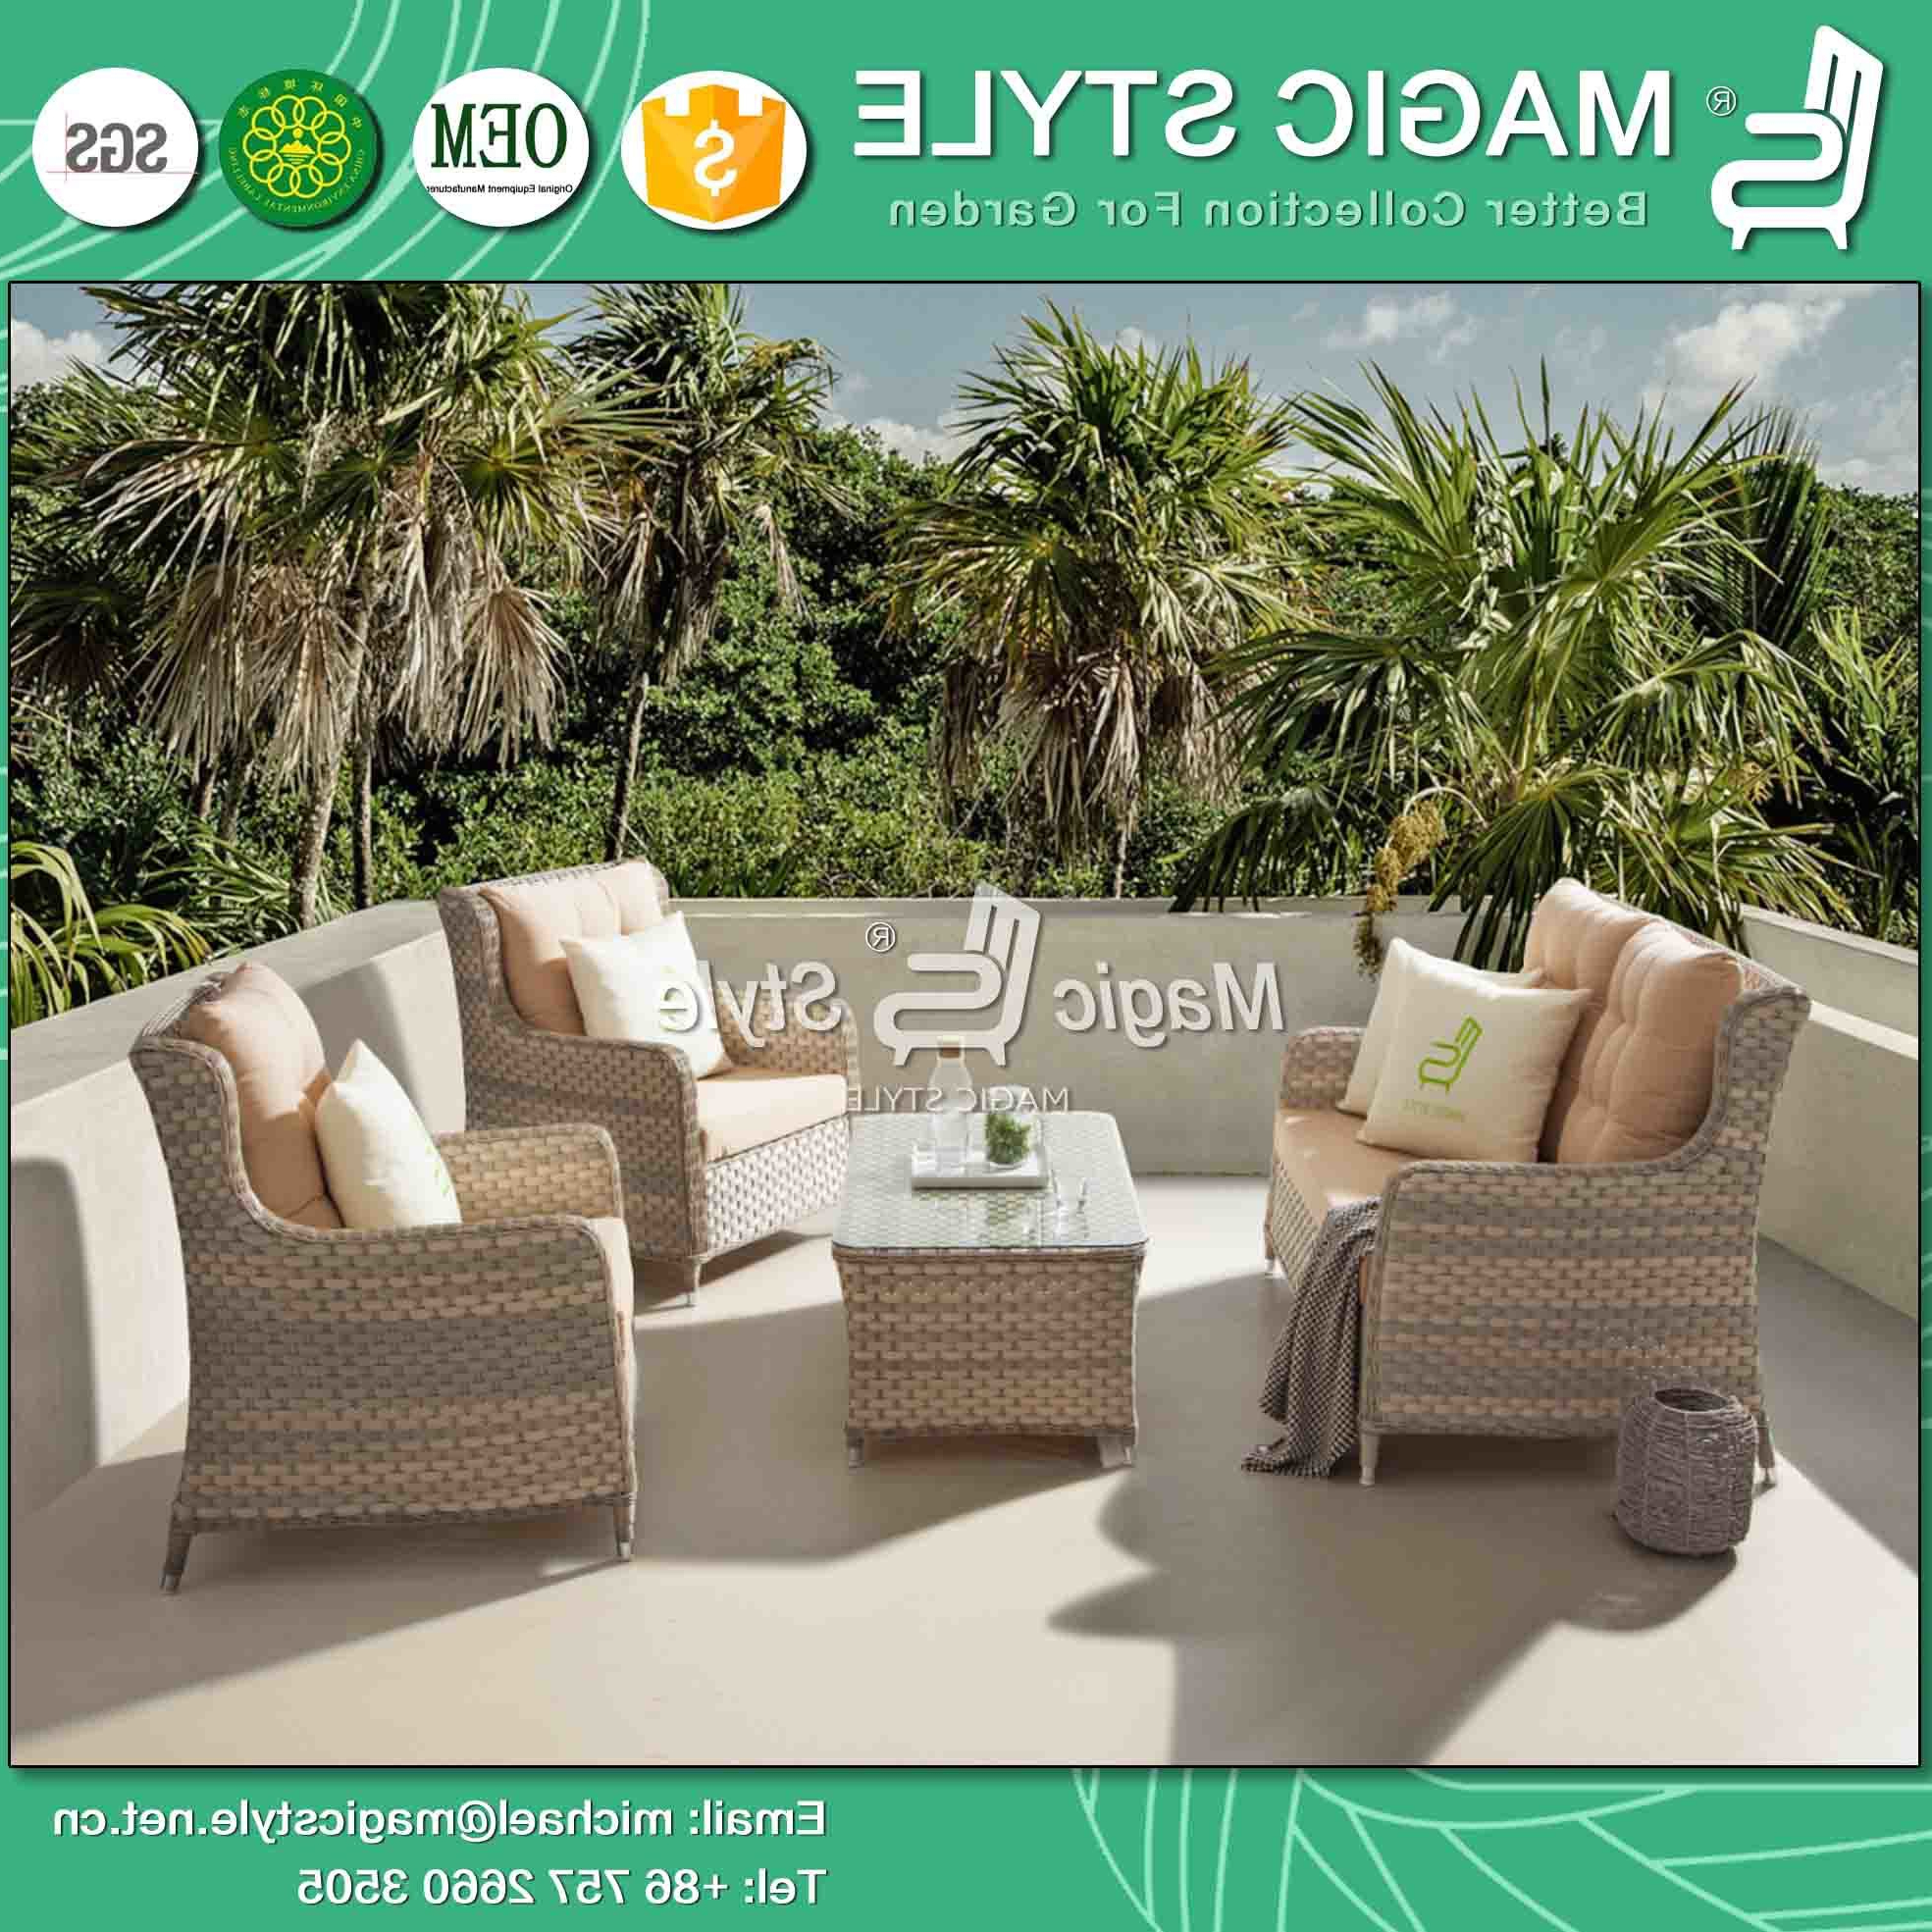 [%[Hot Item] Patio Sofa With Cushion Wicker Combination Sofa Set Outdoor Sofa  Set Rattan 2 Seat Sofa Leisure Sofa For Hotel Patio Furniture Pertaining To Well Known Michal Patio Sofas With Cushions|Michal Patio Sofas With Cushions With Regard To Best And Newest [Hot Item] Patio Sofa With Cushion Wicker Combination Sofa Set Outdoor Sofa  Set Rattan 2 Seat Sofa Leisure Sofa For Hotel Patio Furniture|Newest Michal Patio Sofas With Cushions In [Hot Item] Patio Sofa With Cushion Wicker Combination Sofa Set Outdoor Sofa  Set Rattan 2 Seat Sofa Leisure Sofa For Hotel Patio Furniture|Most Up To Date [Hot Item] Patio Sofa With Cushion Wicker Combination Sofa Set Outdoor Sofa  Set Rattan 2 Seat Sofa Leisure Sofa For Hotel Patio Furniture For Michal Patio Sofas With Cushions%] (View 1 of 20)